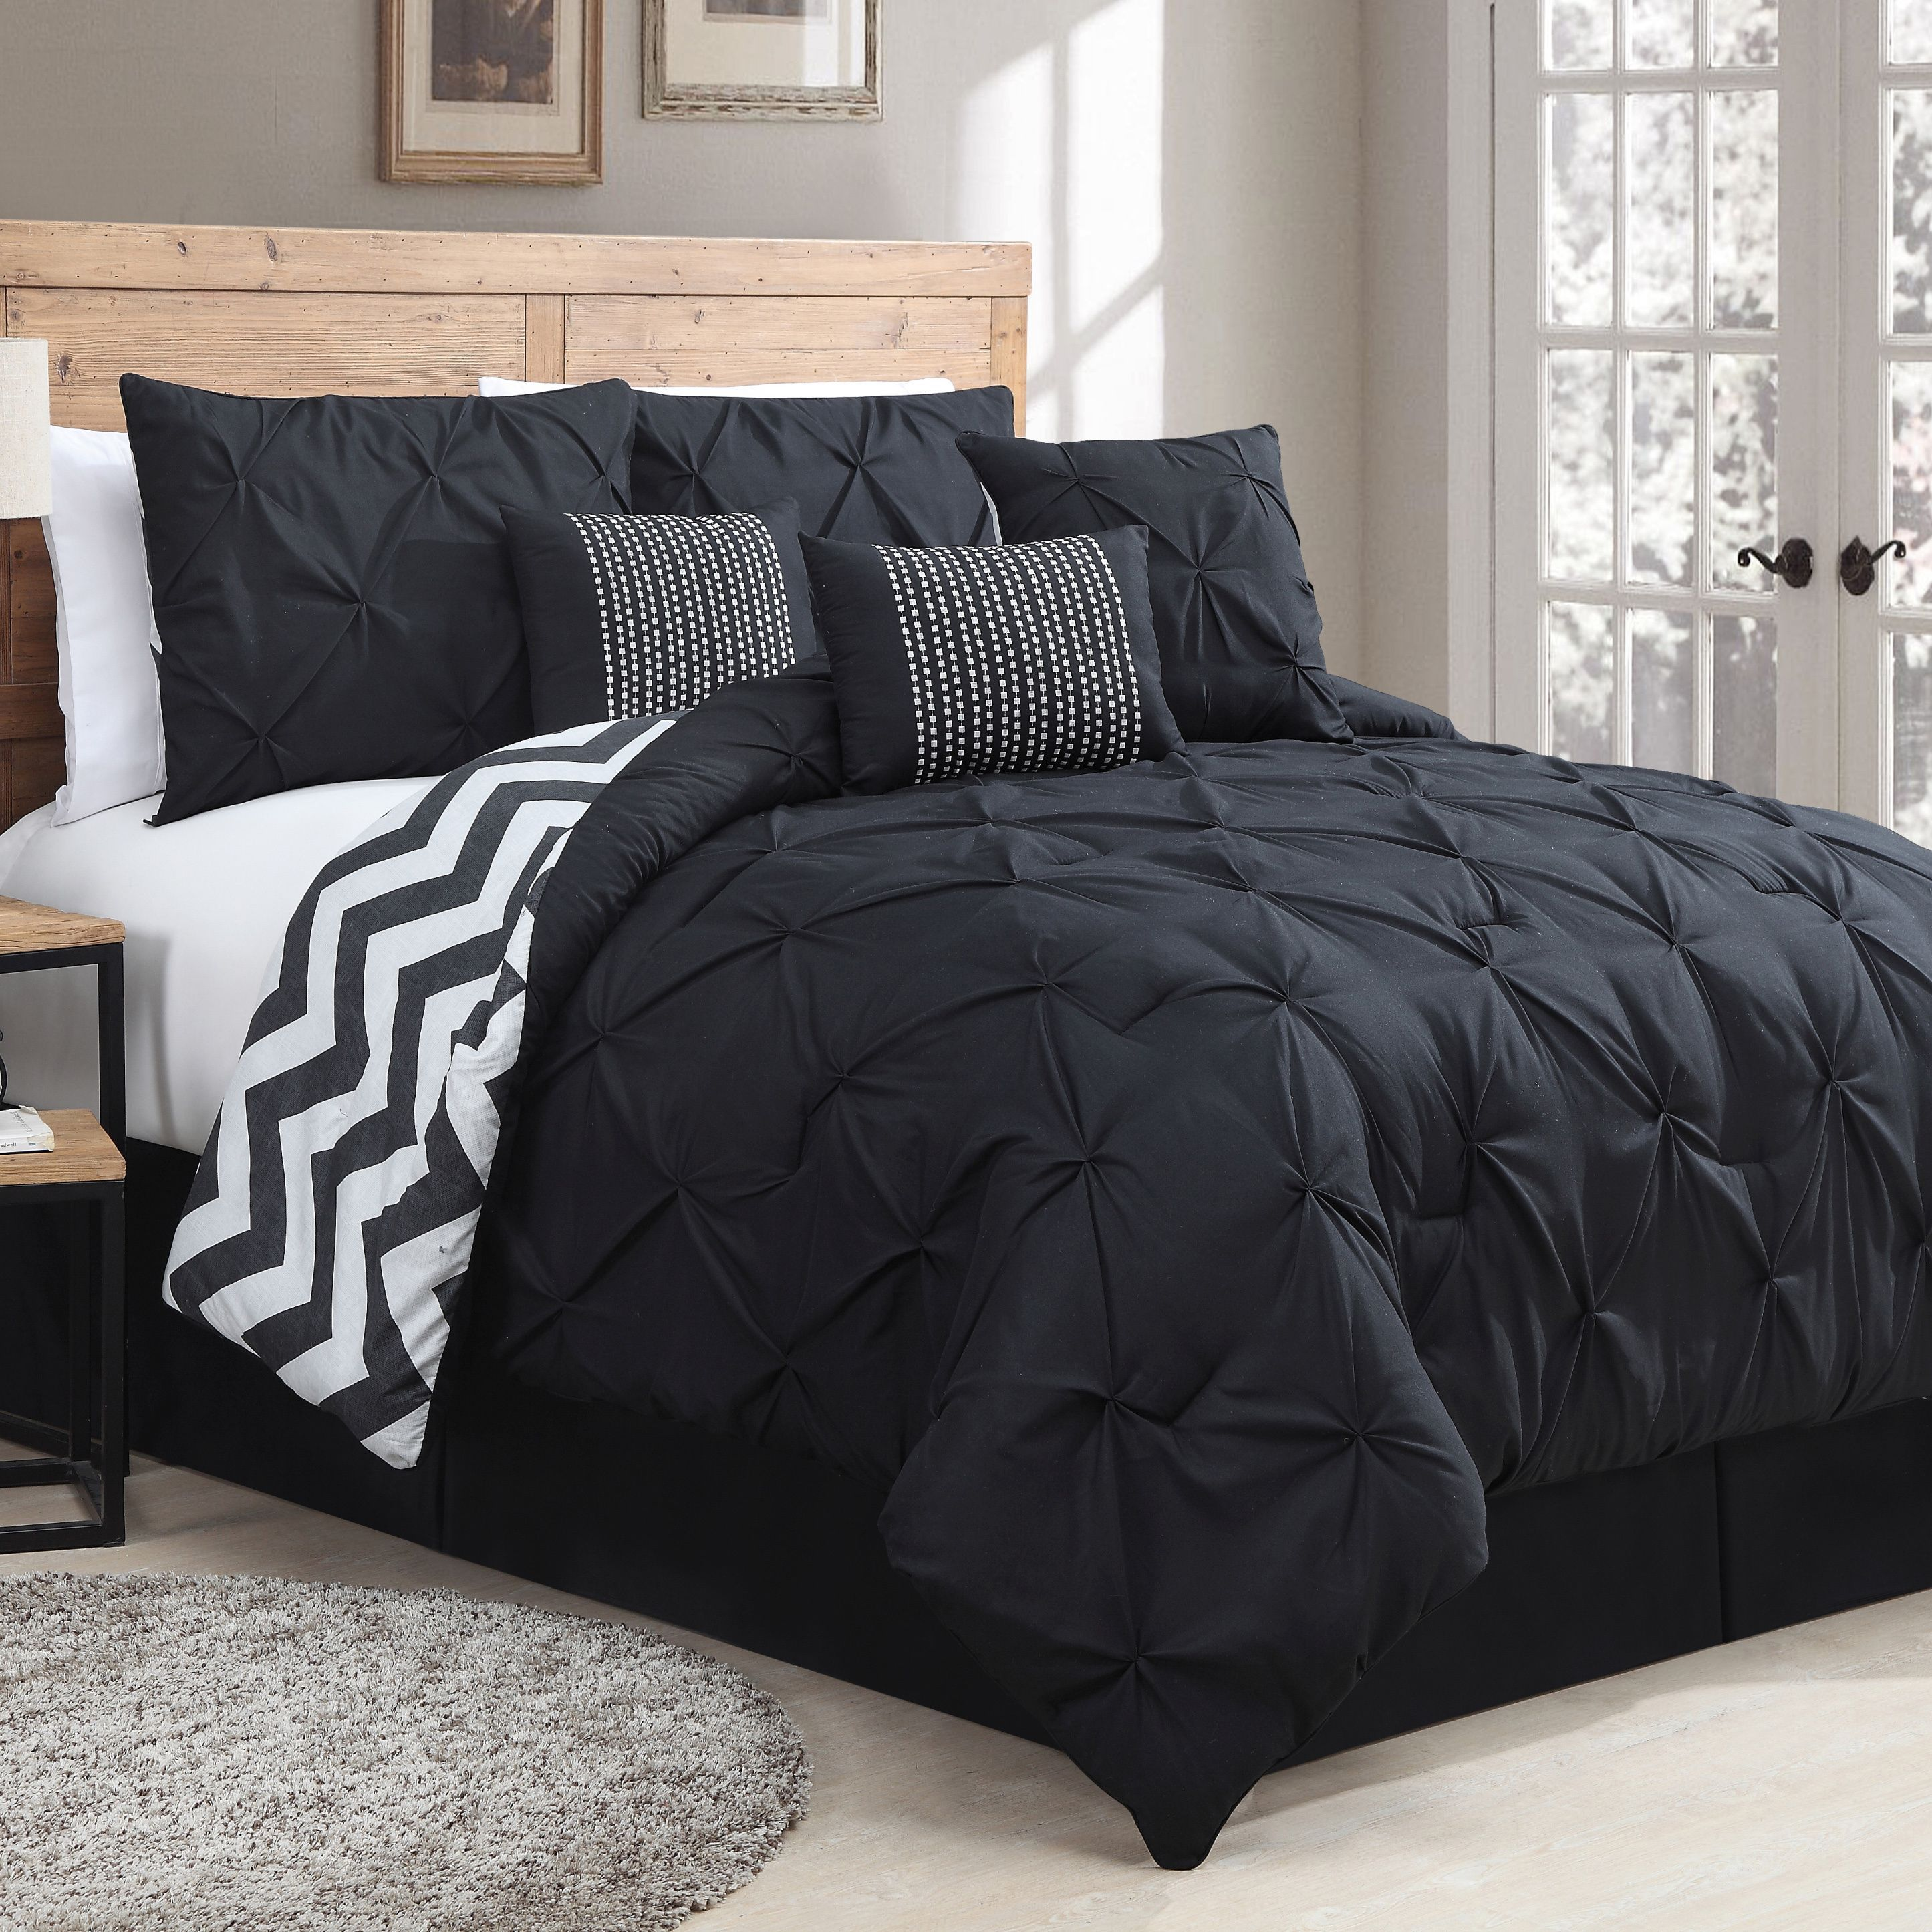 fascinating black set shocking twin simple gray bedroom marvelous bear concept with and xfile striped white of comforter pic sets king styles